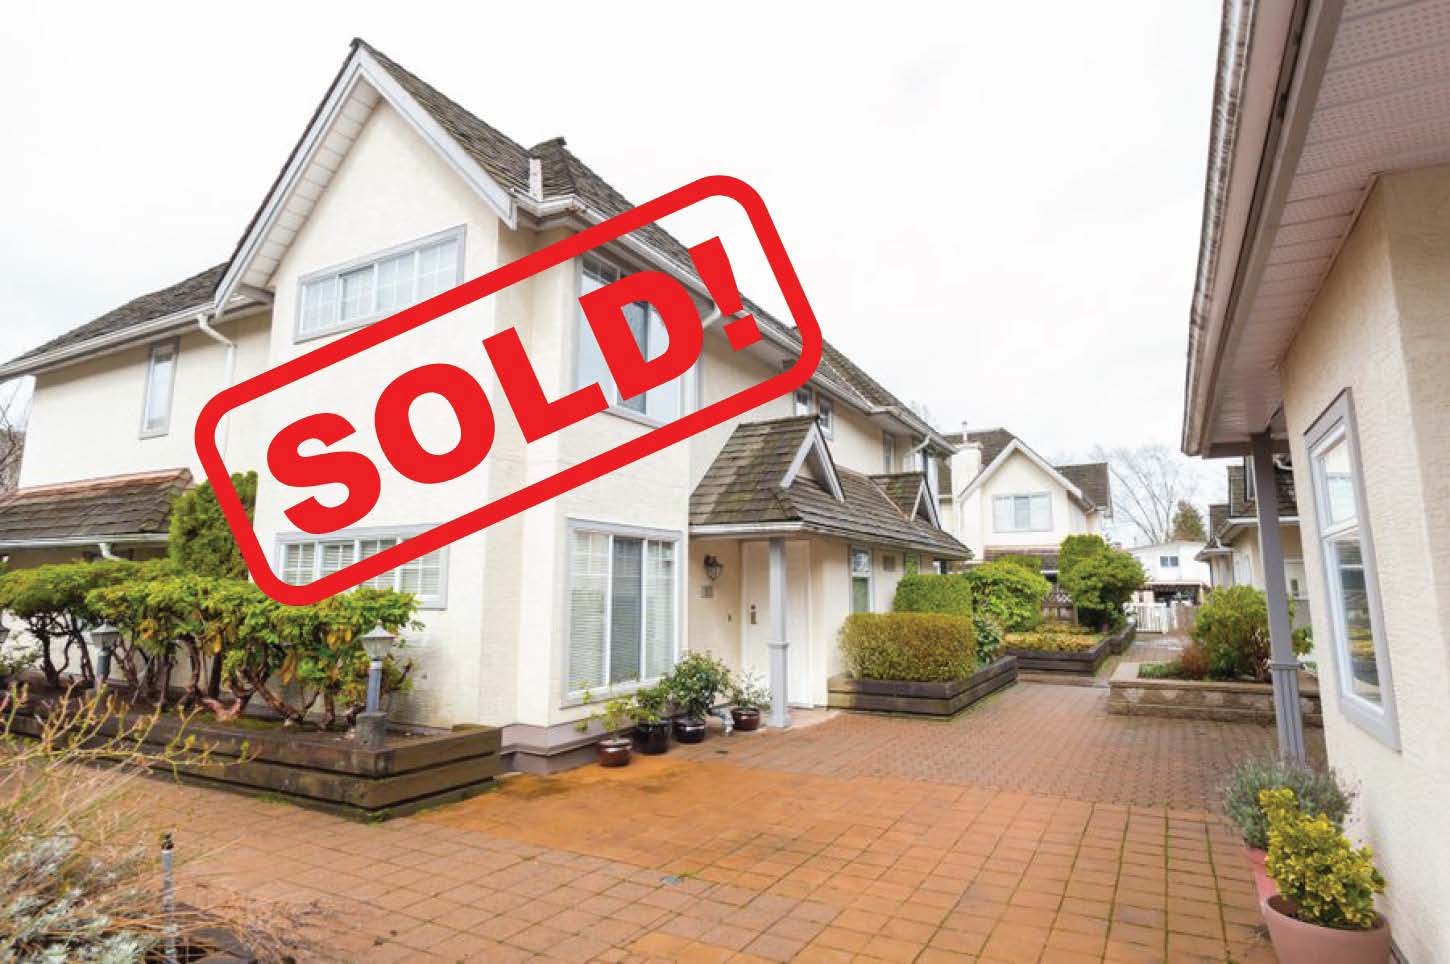 42-6511 Chambord Pl   sold for: $570,000  2 Bed | 2 Bath | 1,100 SF